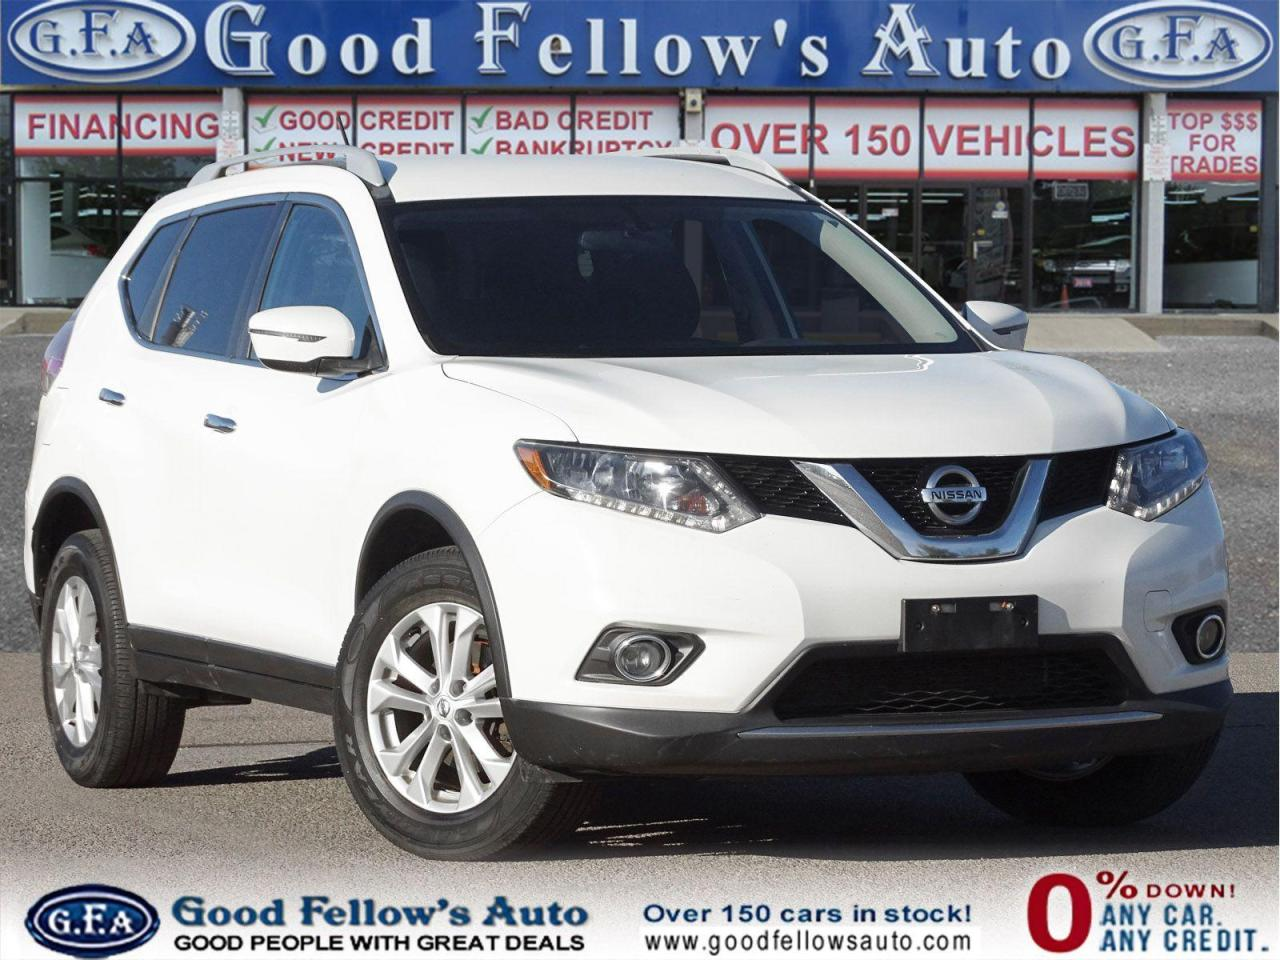 used 2016 Nissan Rogue car, priced at $13,999